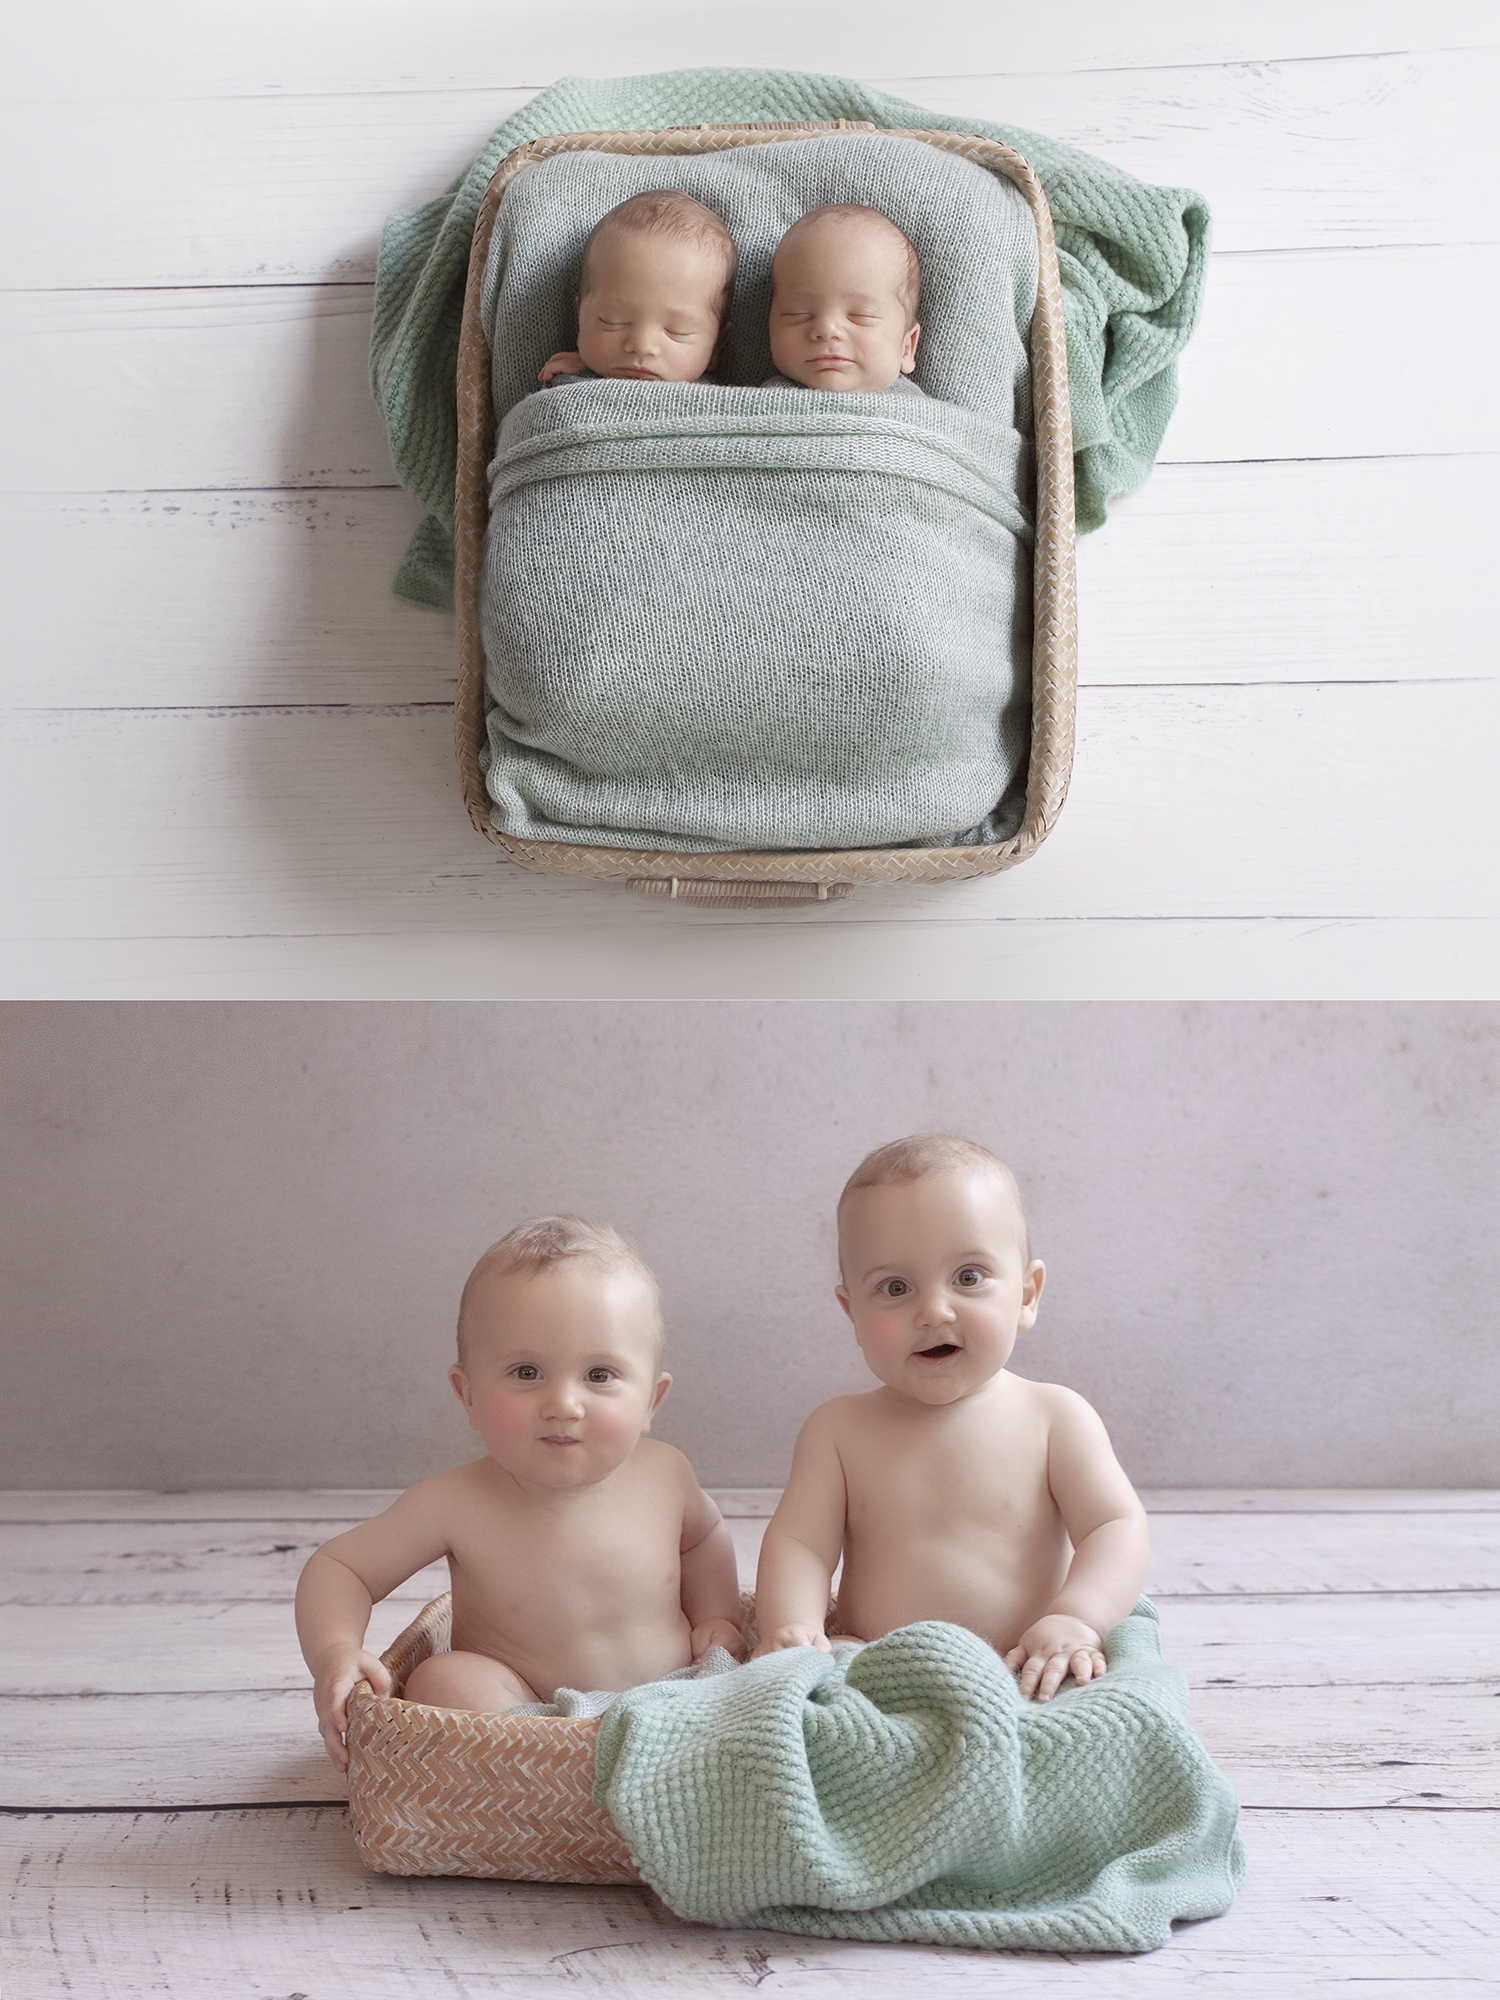 Newborn twin boys sleeping in cane rectangle basket with mint blanket and wrap on white wooden floor and same set up as 8 month old boys